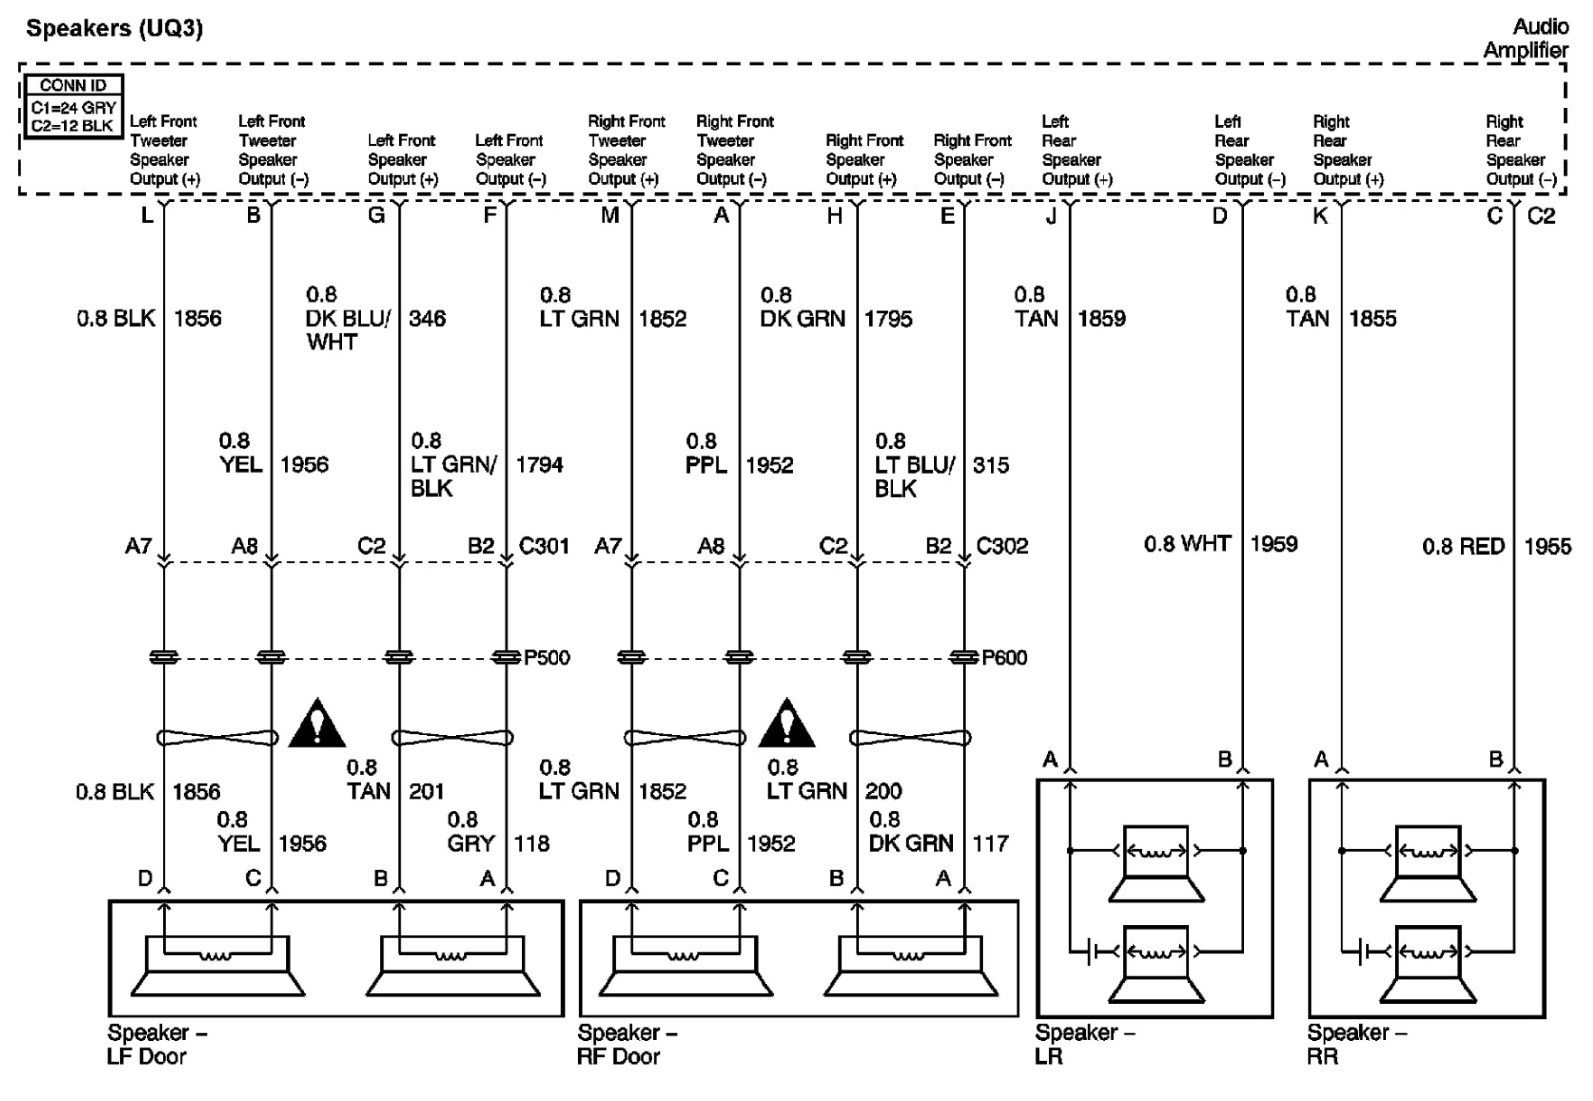 2004 monte carlo radio wiring diagram sample. Black Bedroom Furniture Sets. Home Design Ideas